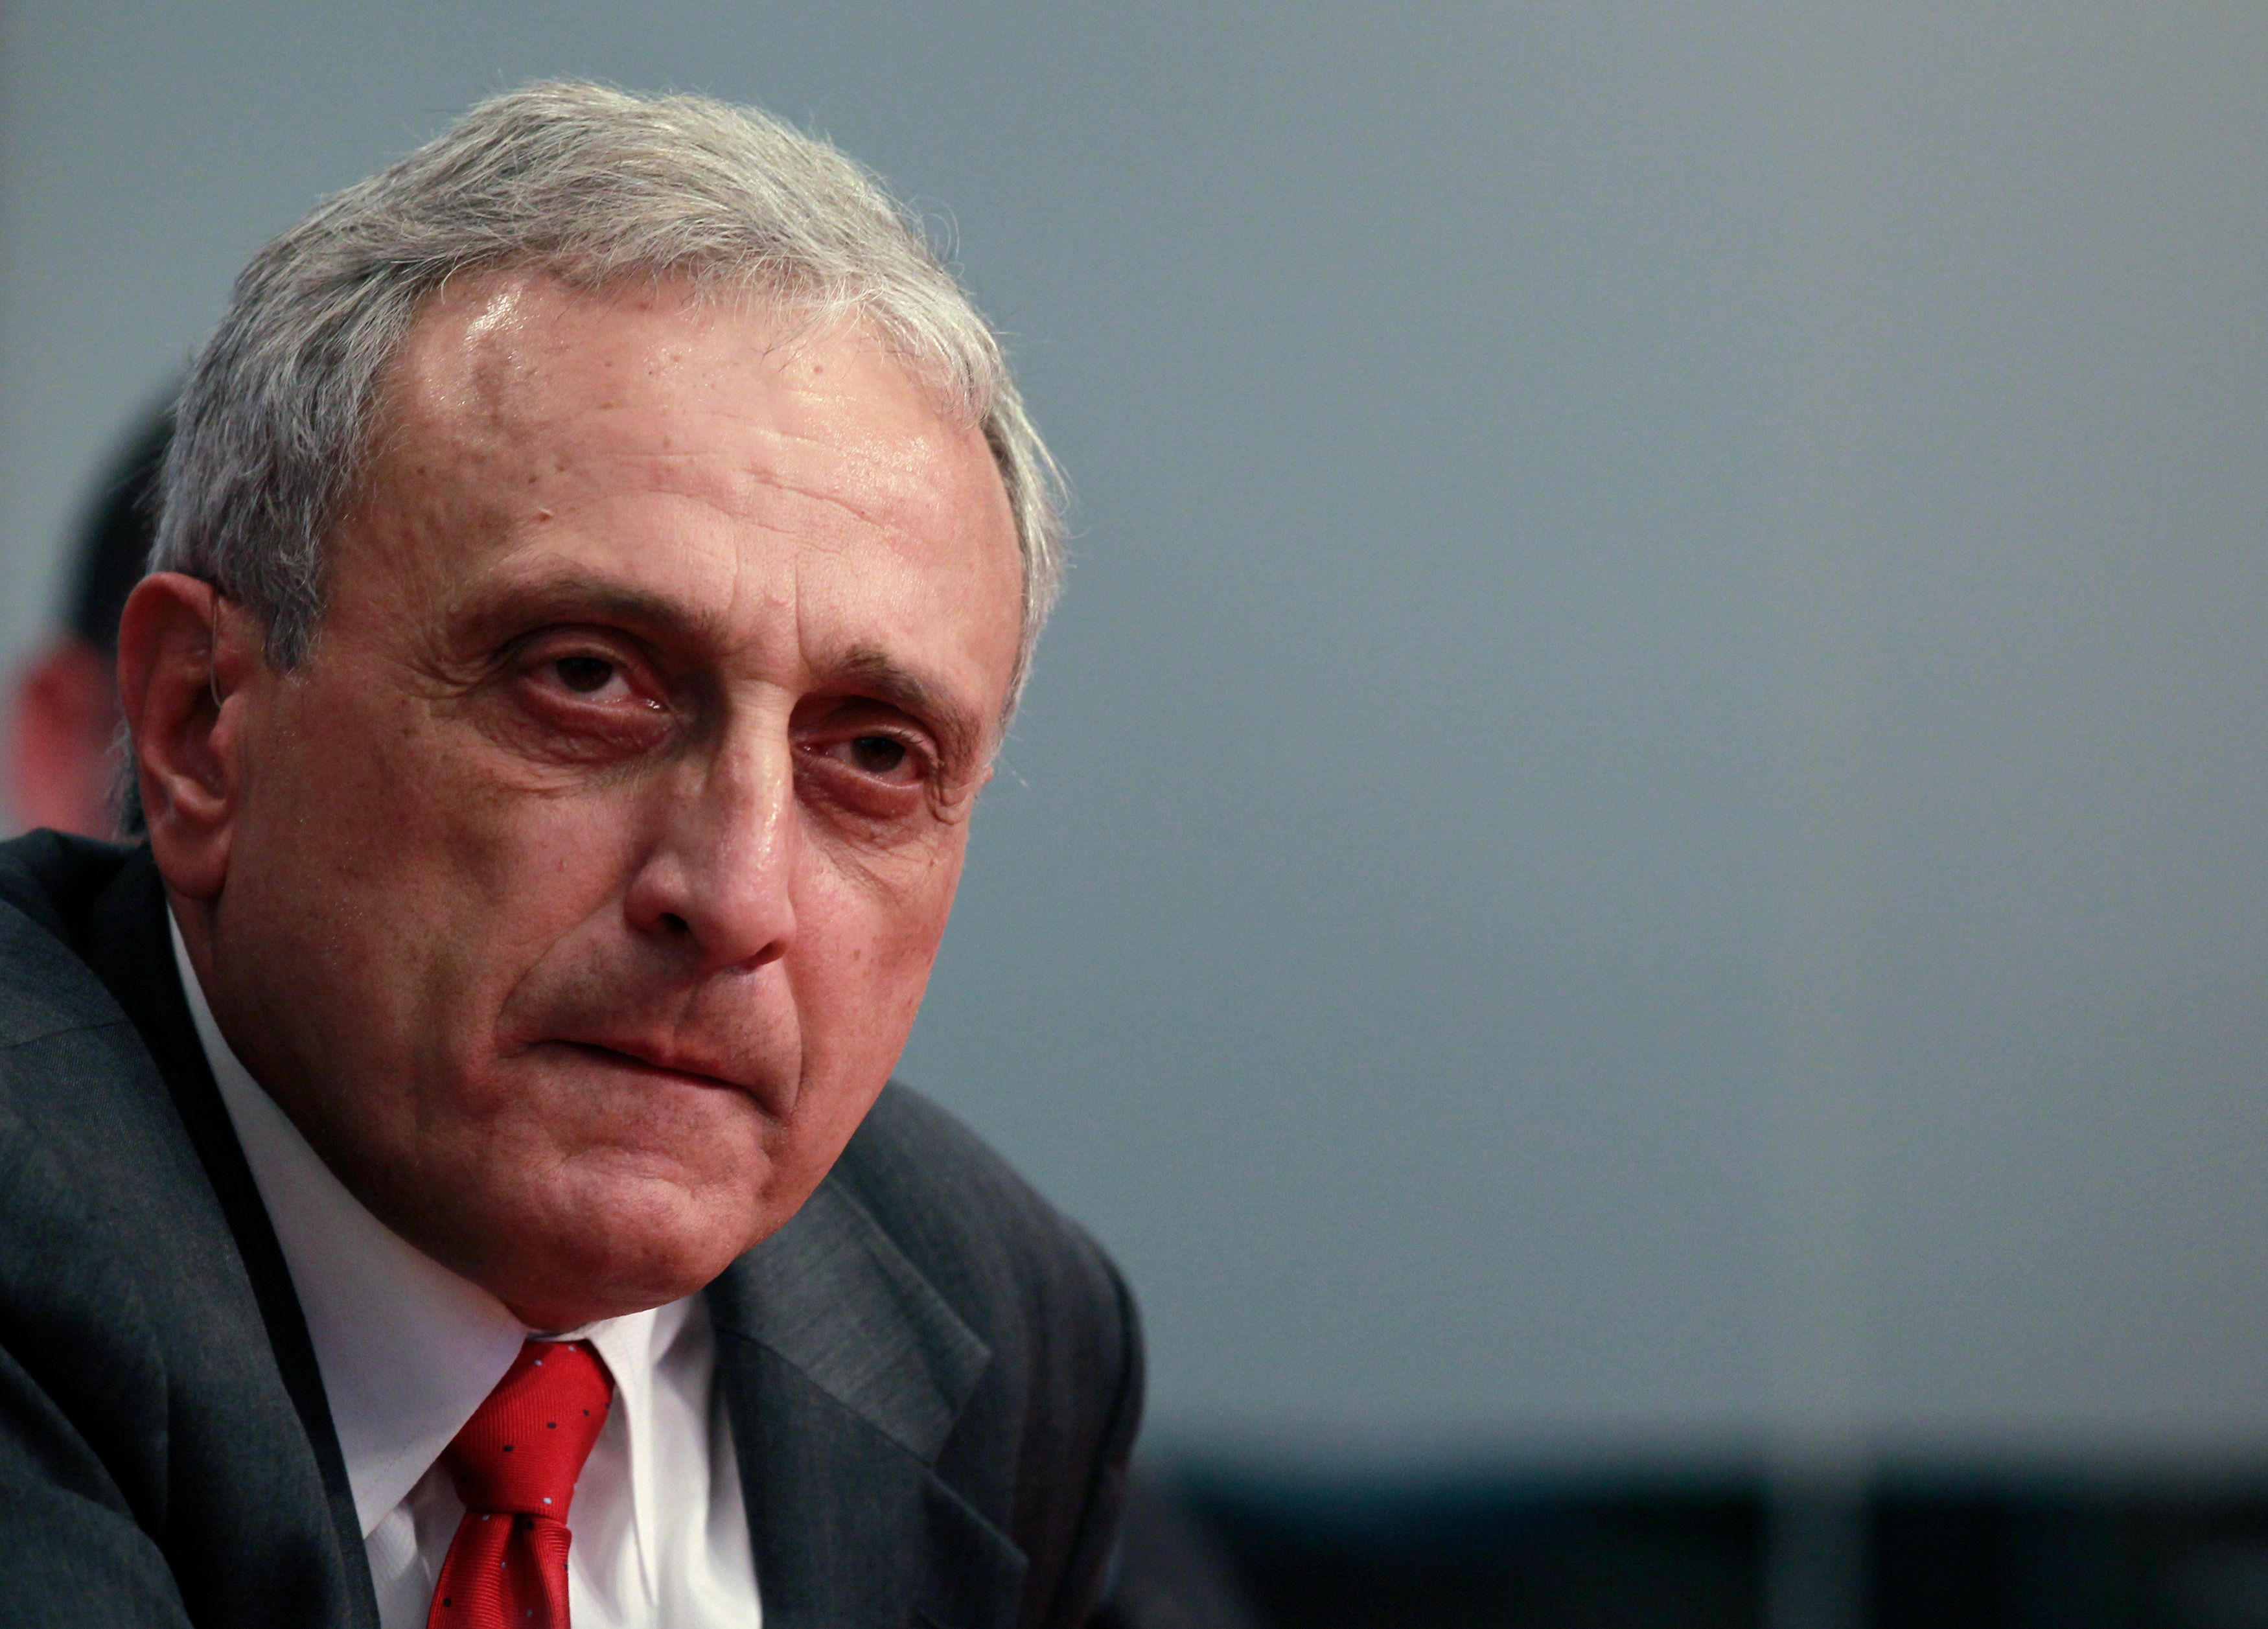 New York State Republican gubernatorial candidate Carl Paladino speaks to Reuters in New York October 21, 2010. REUTERS/Brendan McDermid (UNITED STATES - Tags: POLITICS HEADSHOT ELECTIONS)